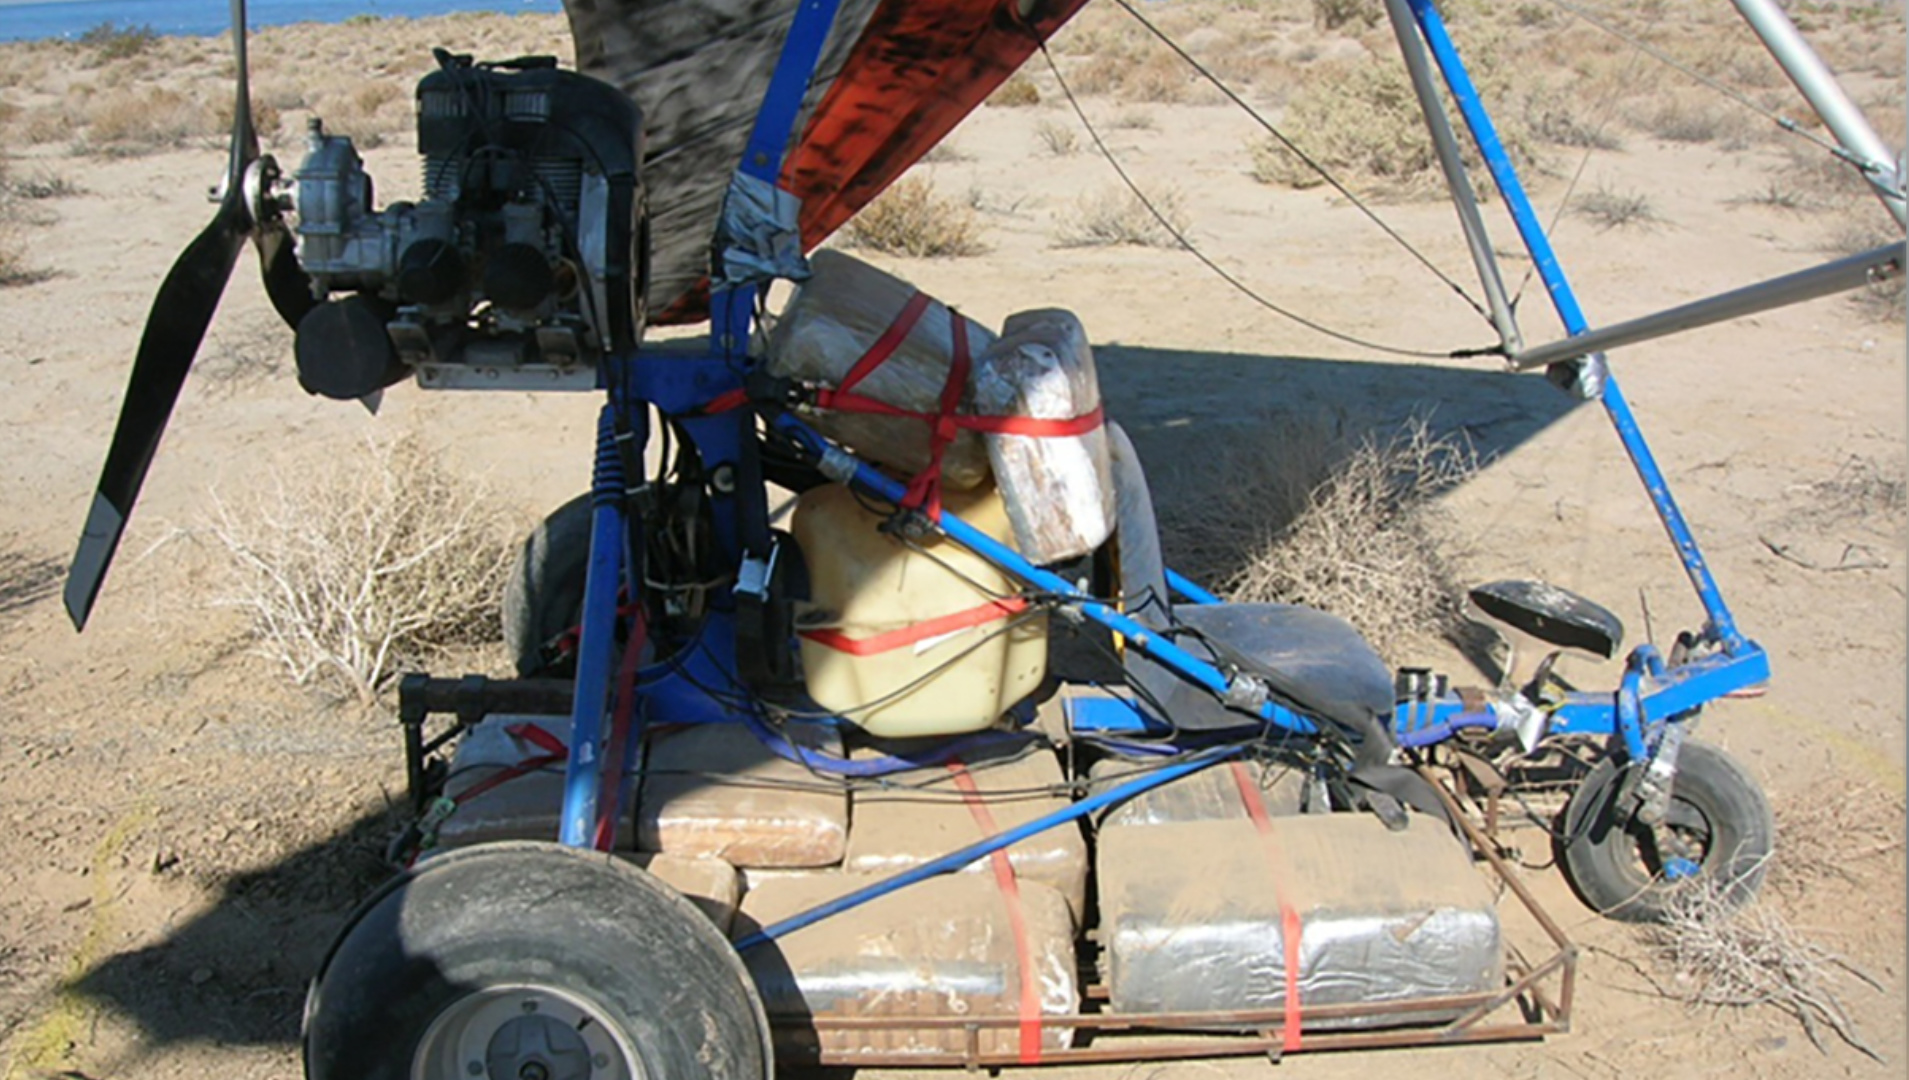 Customs and Border Protection shared this image to show an example of the type of ultralight aircraft intercepted July 11, 2020, by CBP agents.